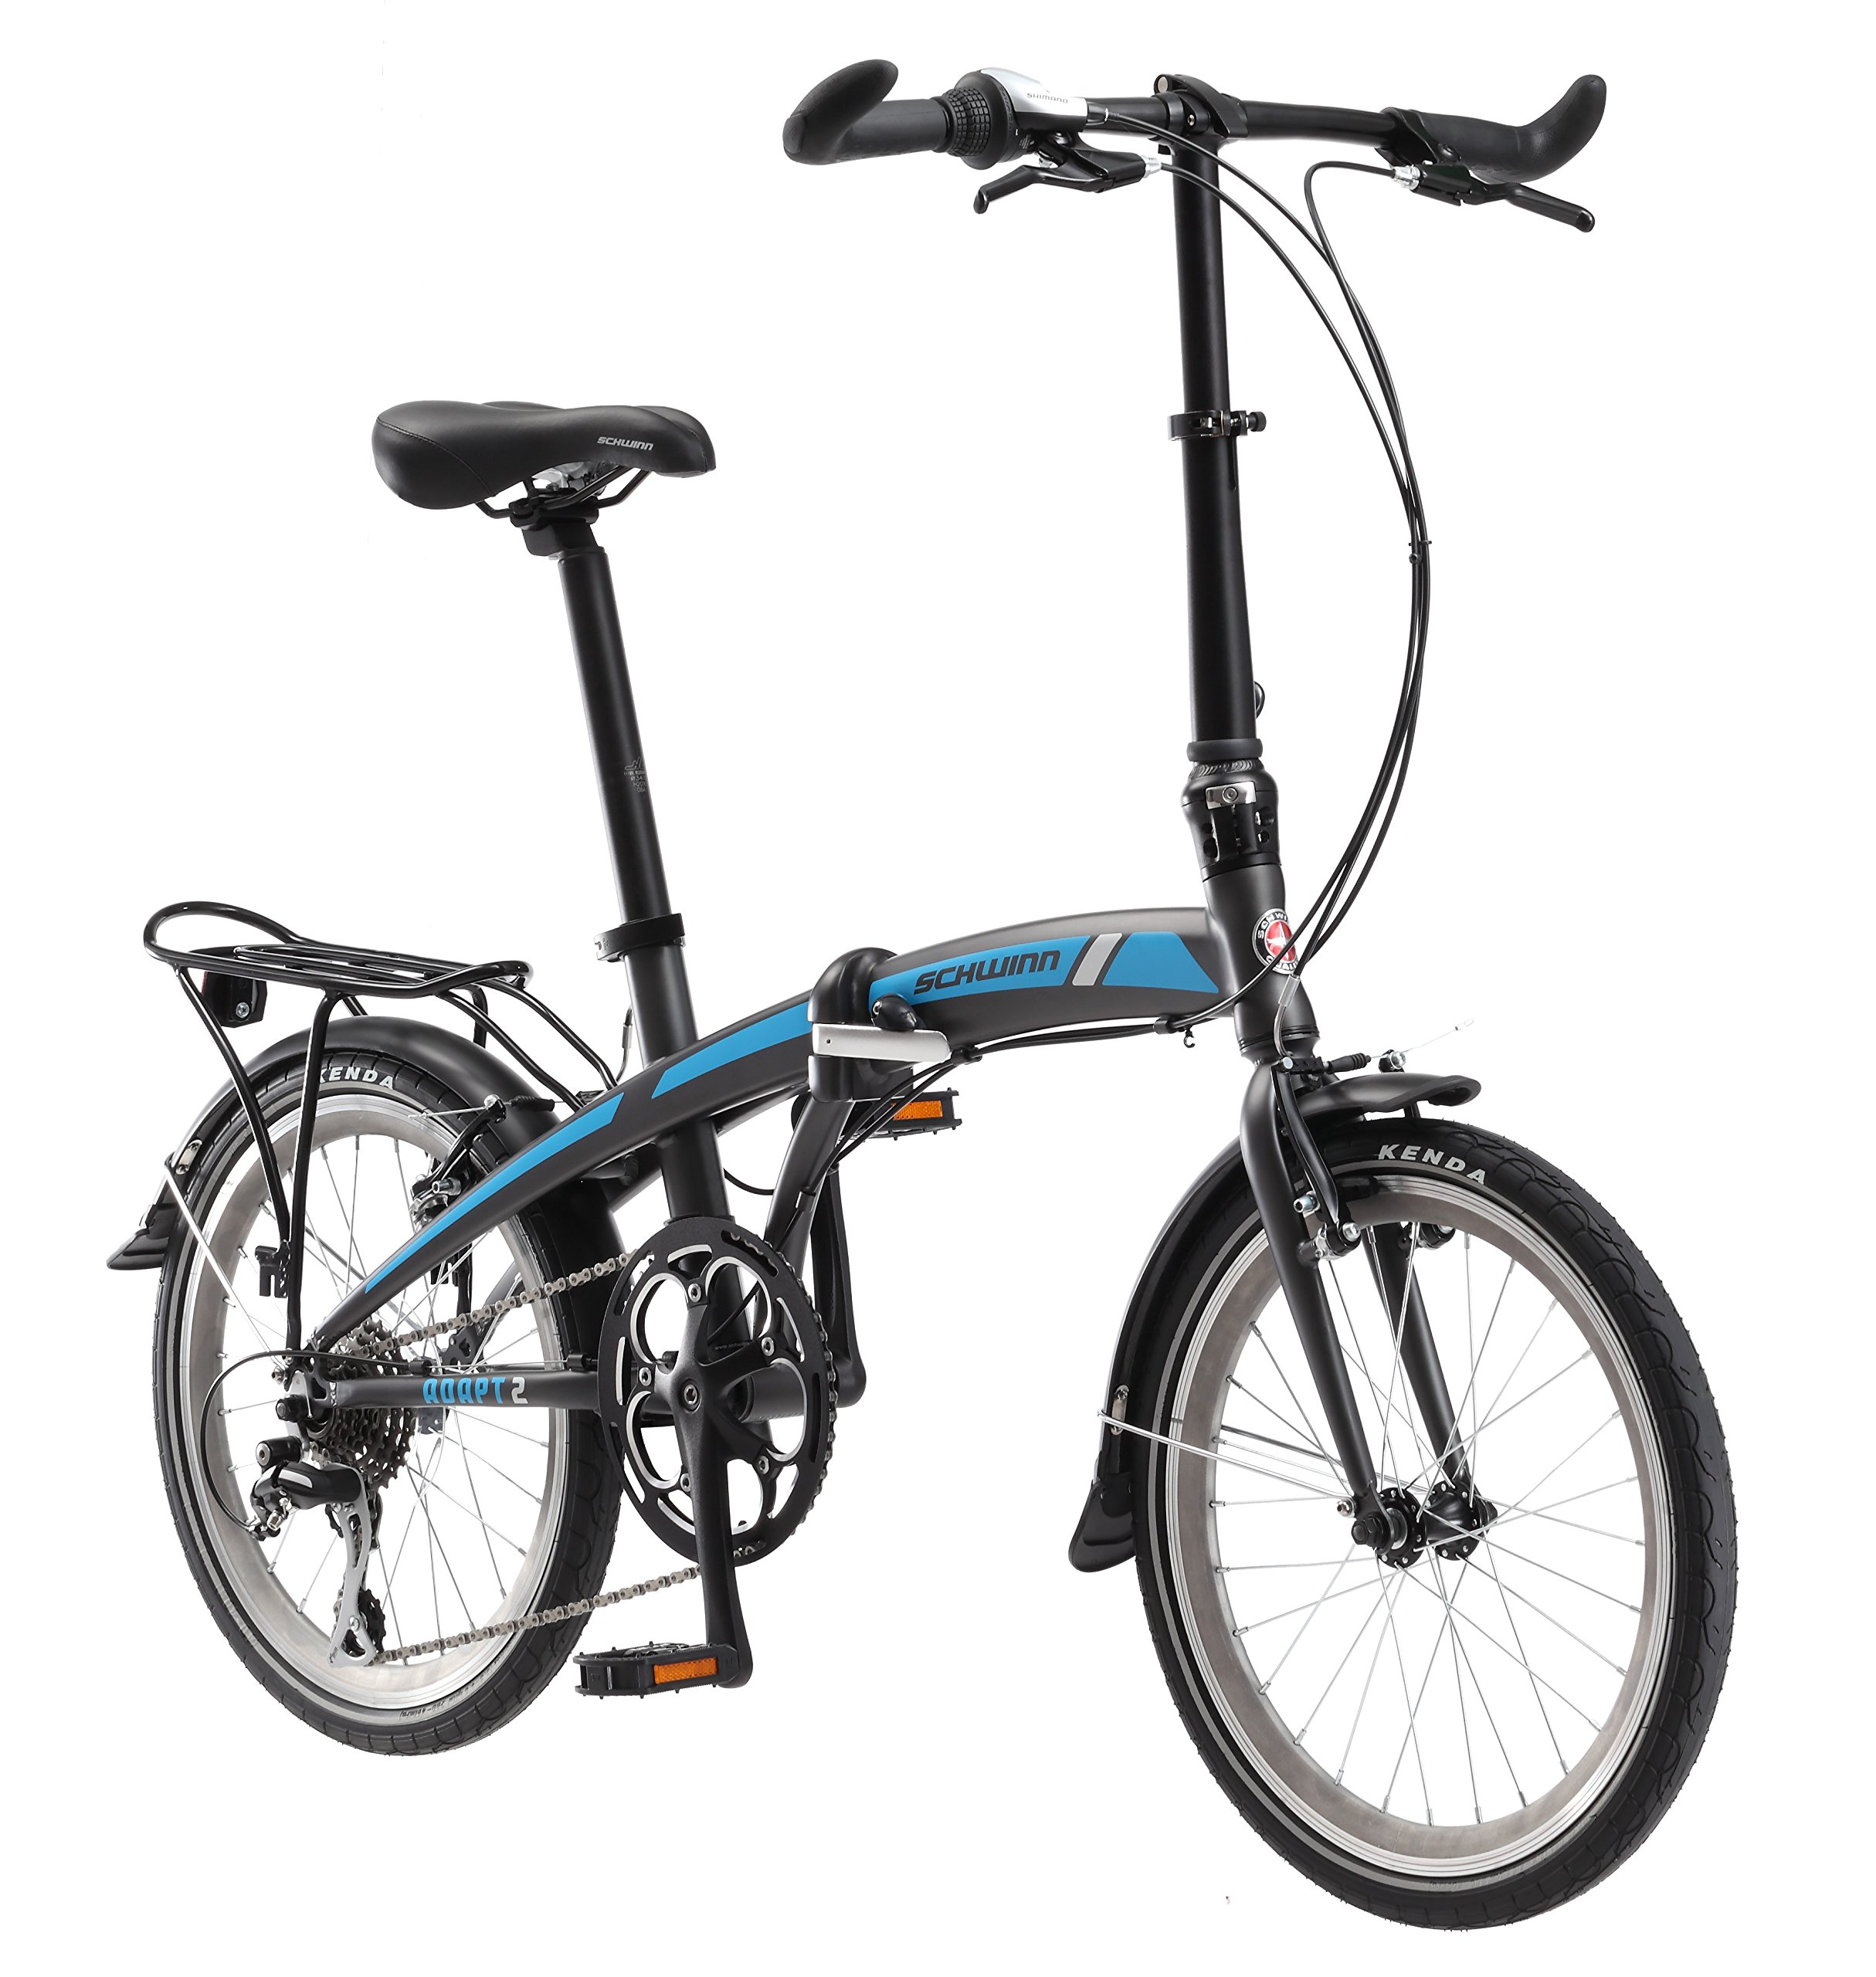 Schwinn Adapt 2 8 Speed Folding Bike Matte Charcoal 20'' Wheel, one size frame